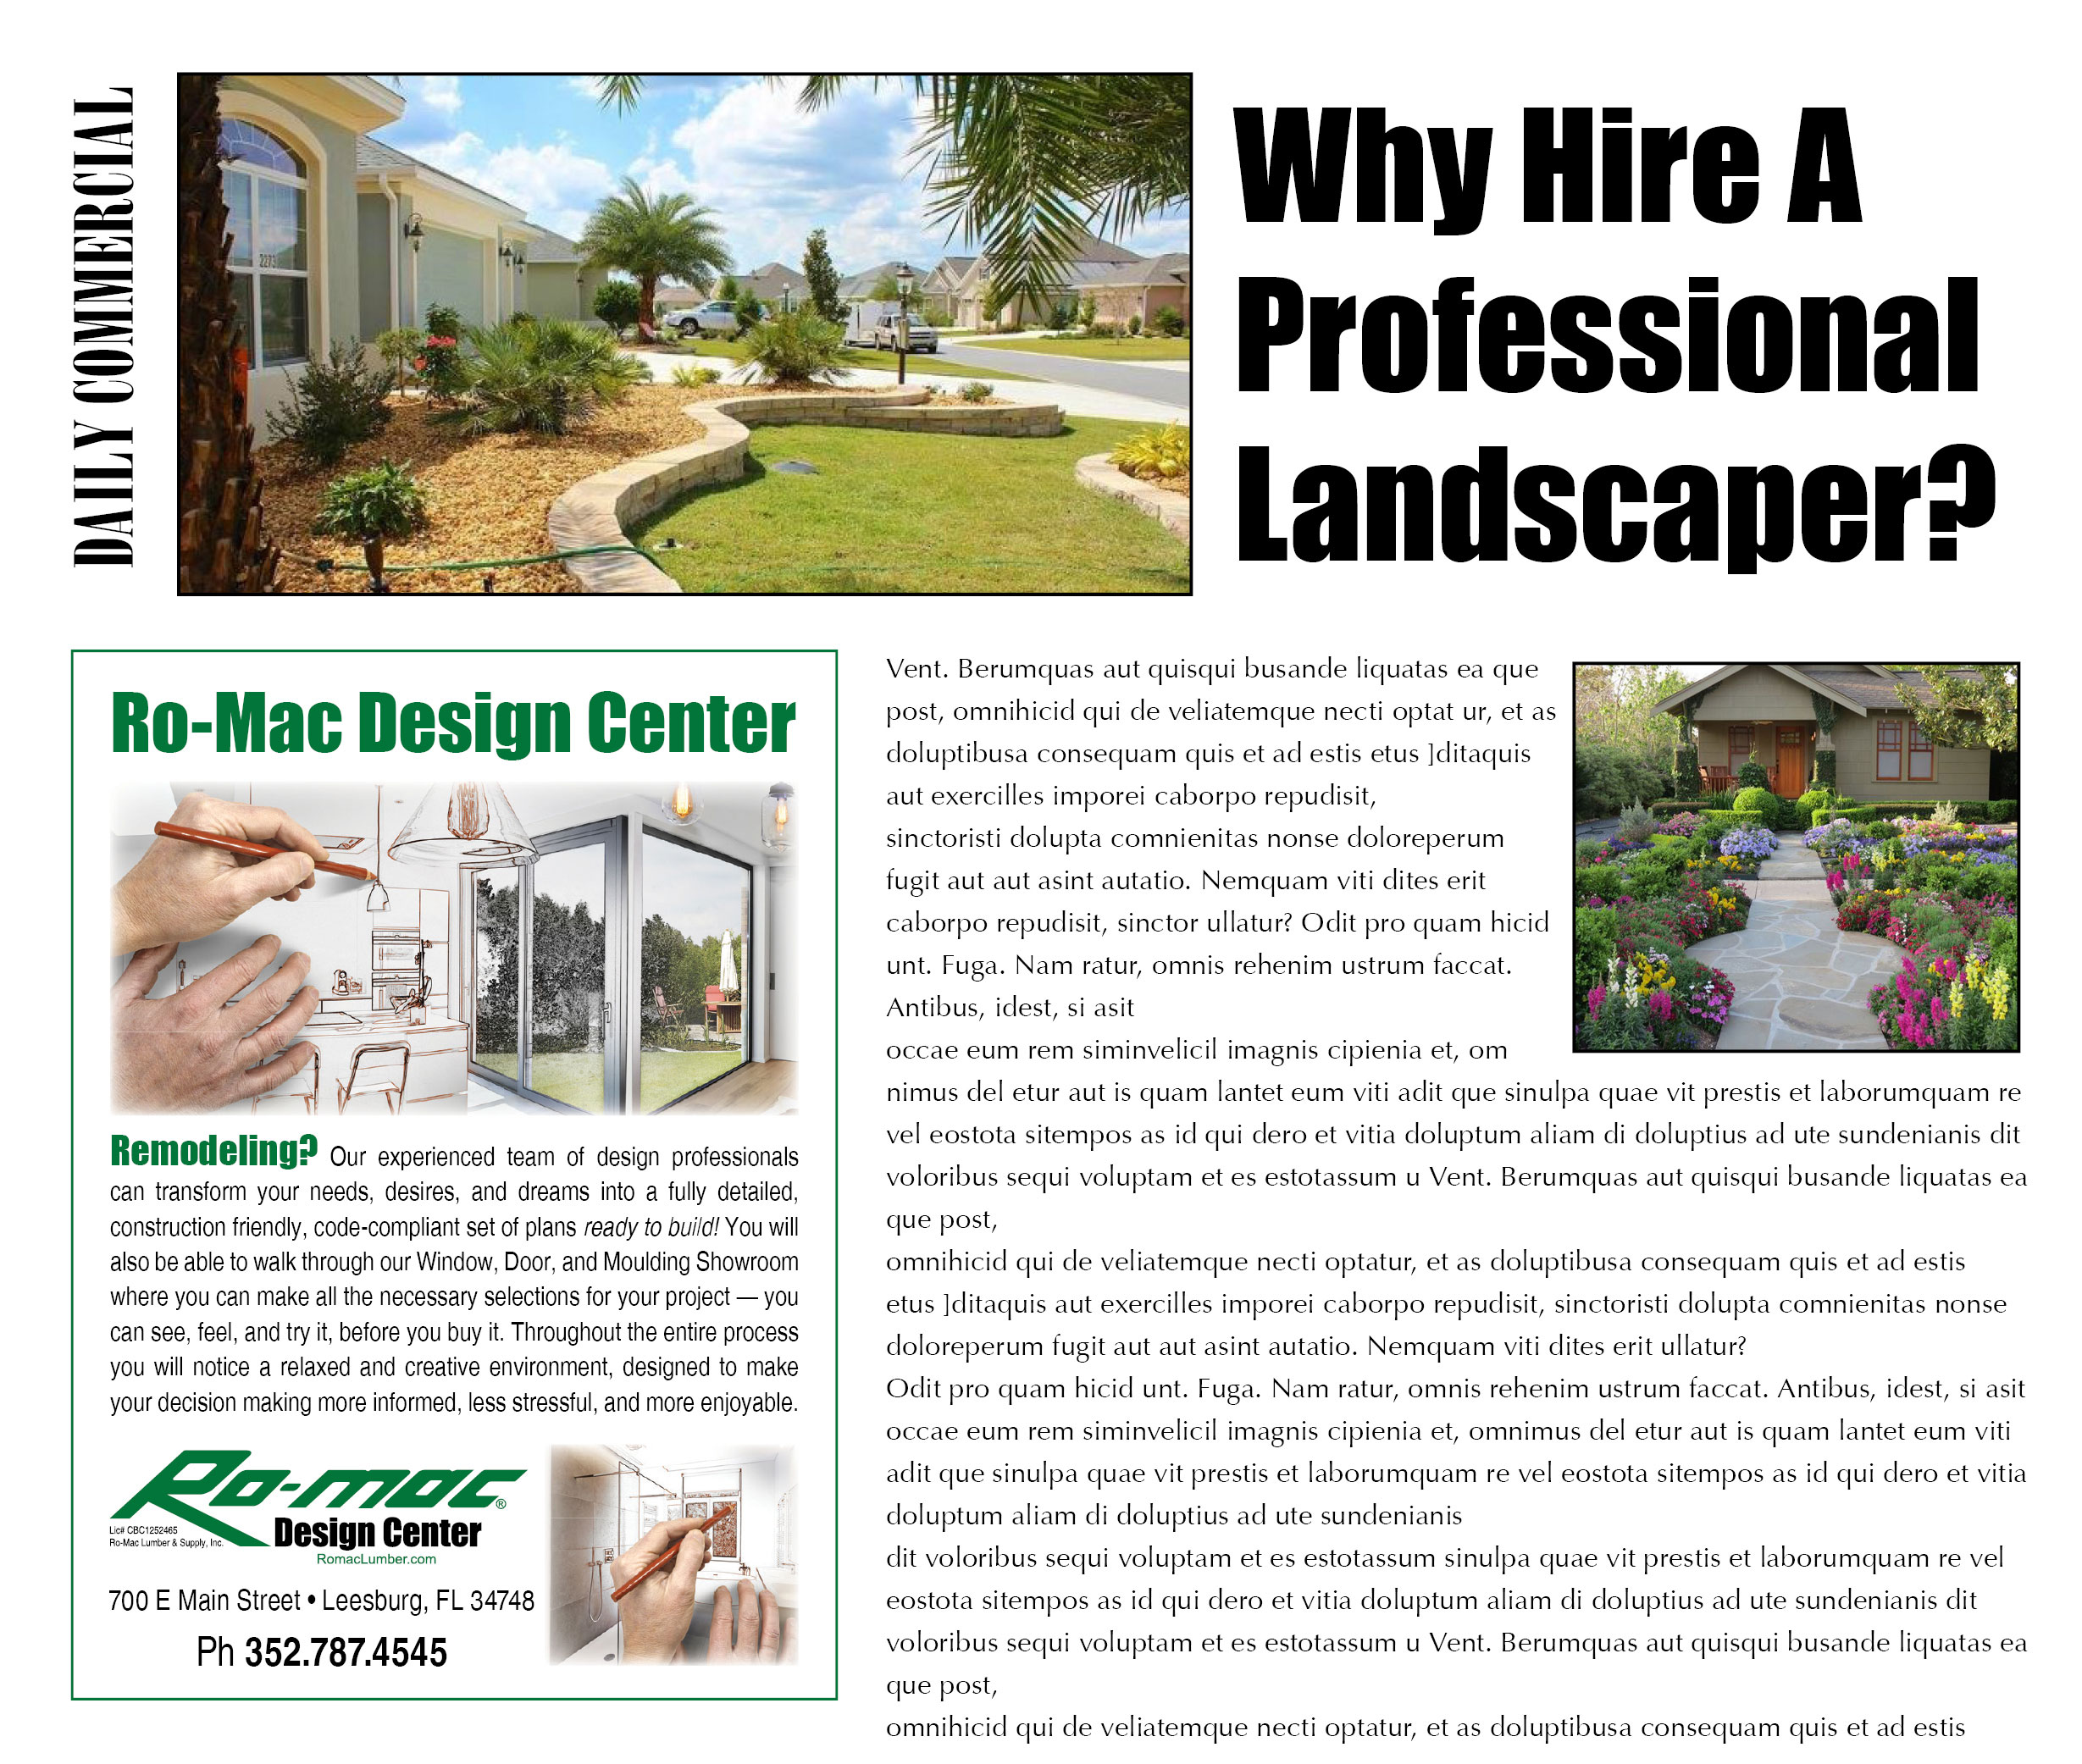 18-10-20 ProLandscaping